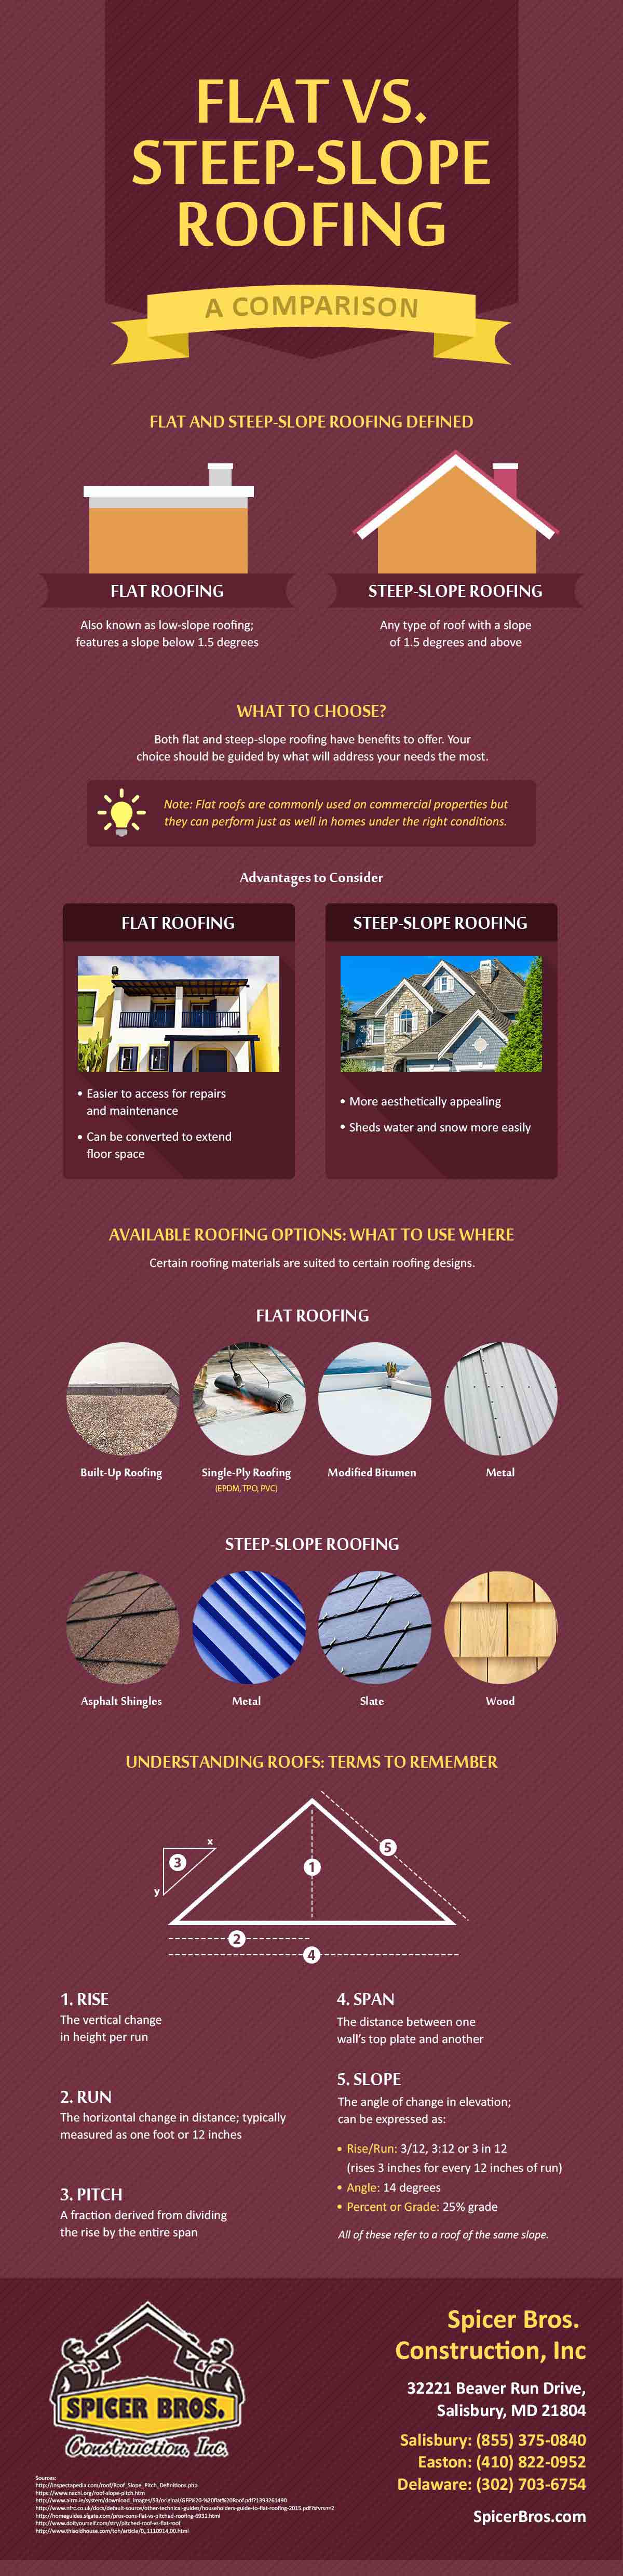 Infographic-Flat-vs-Steep-Slope-Roofing-